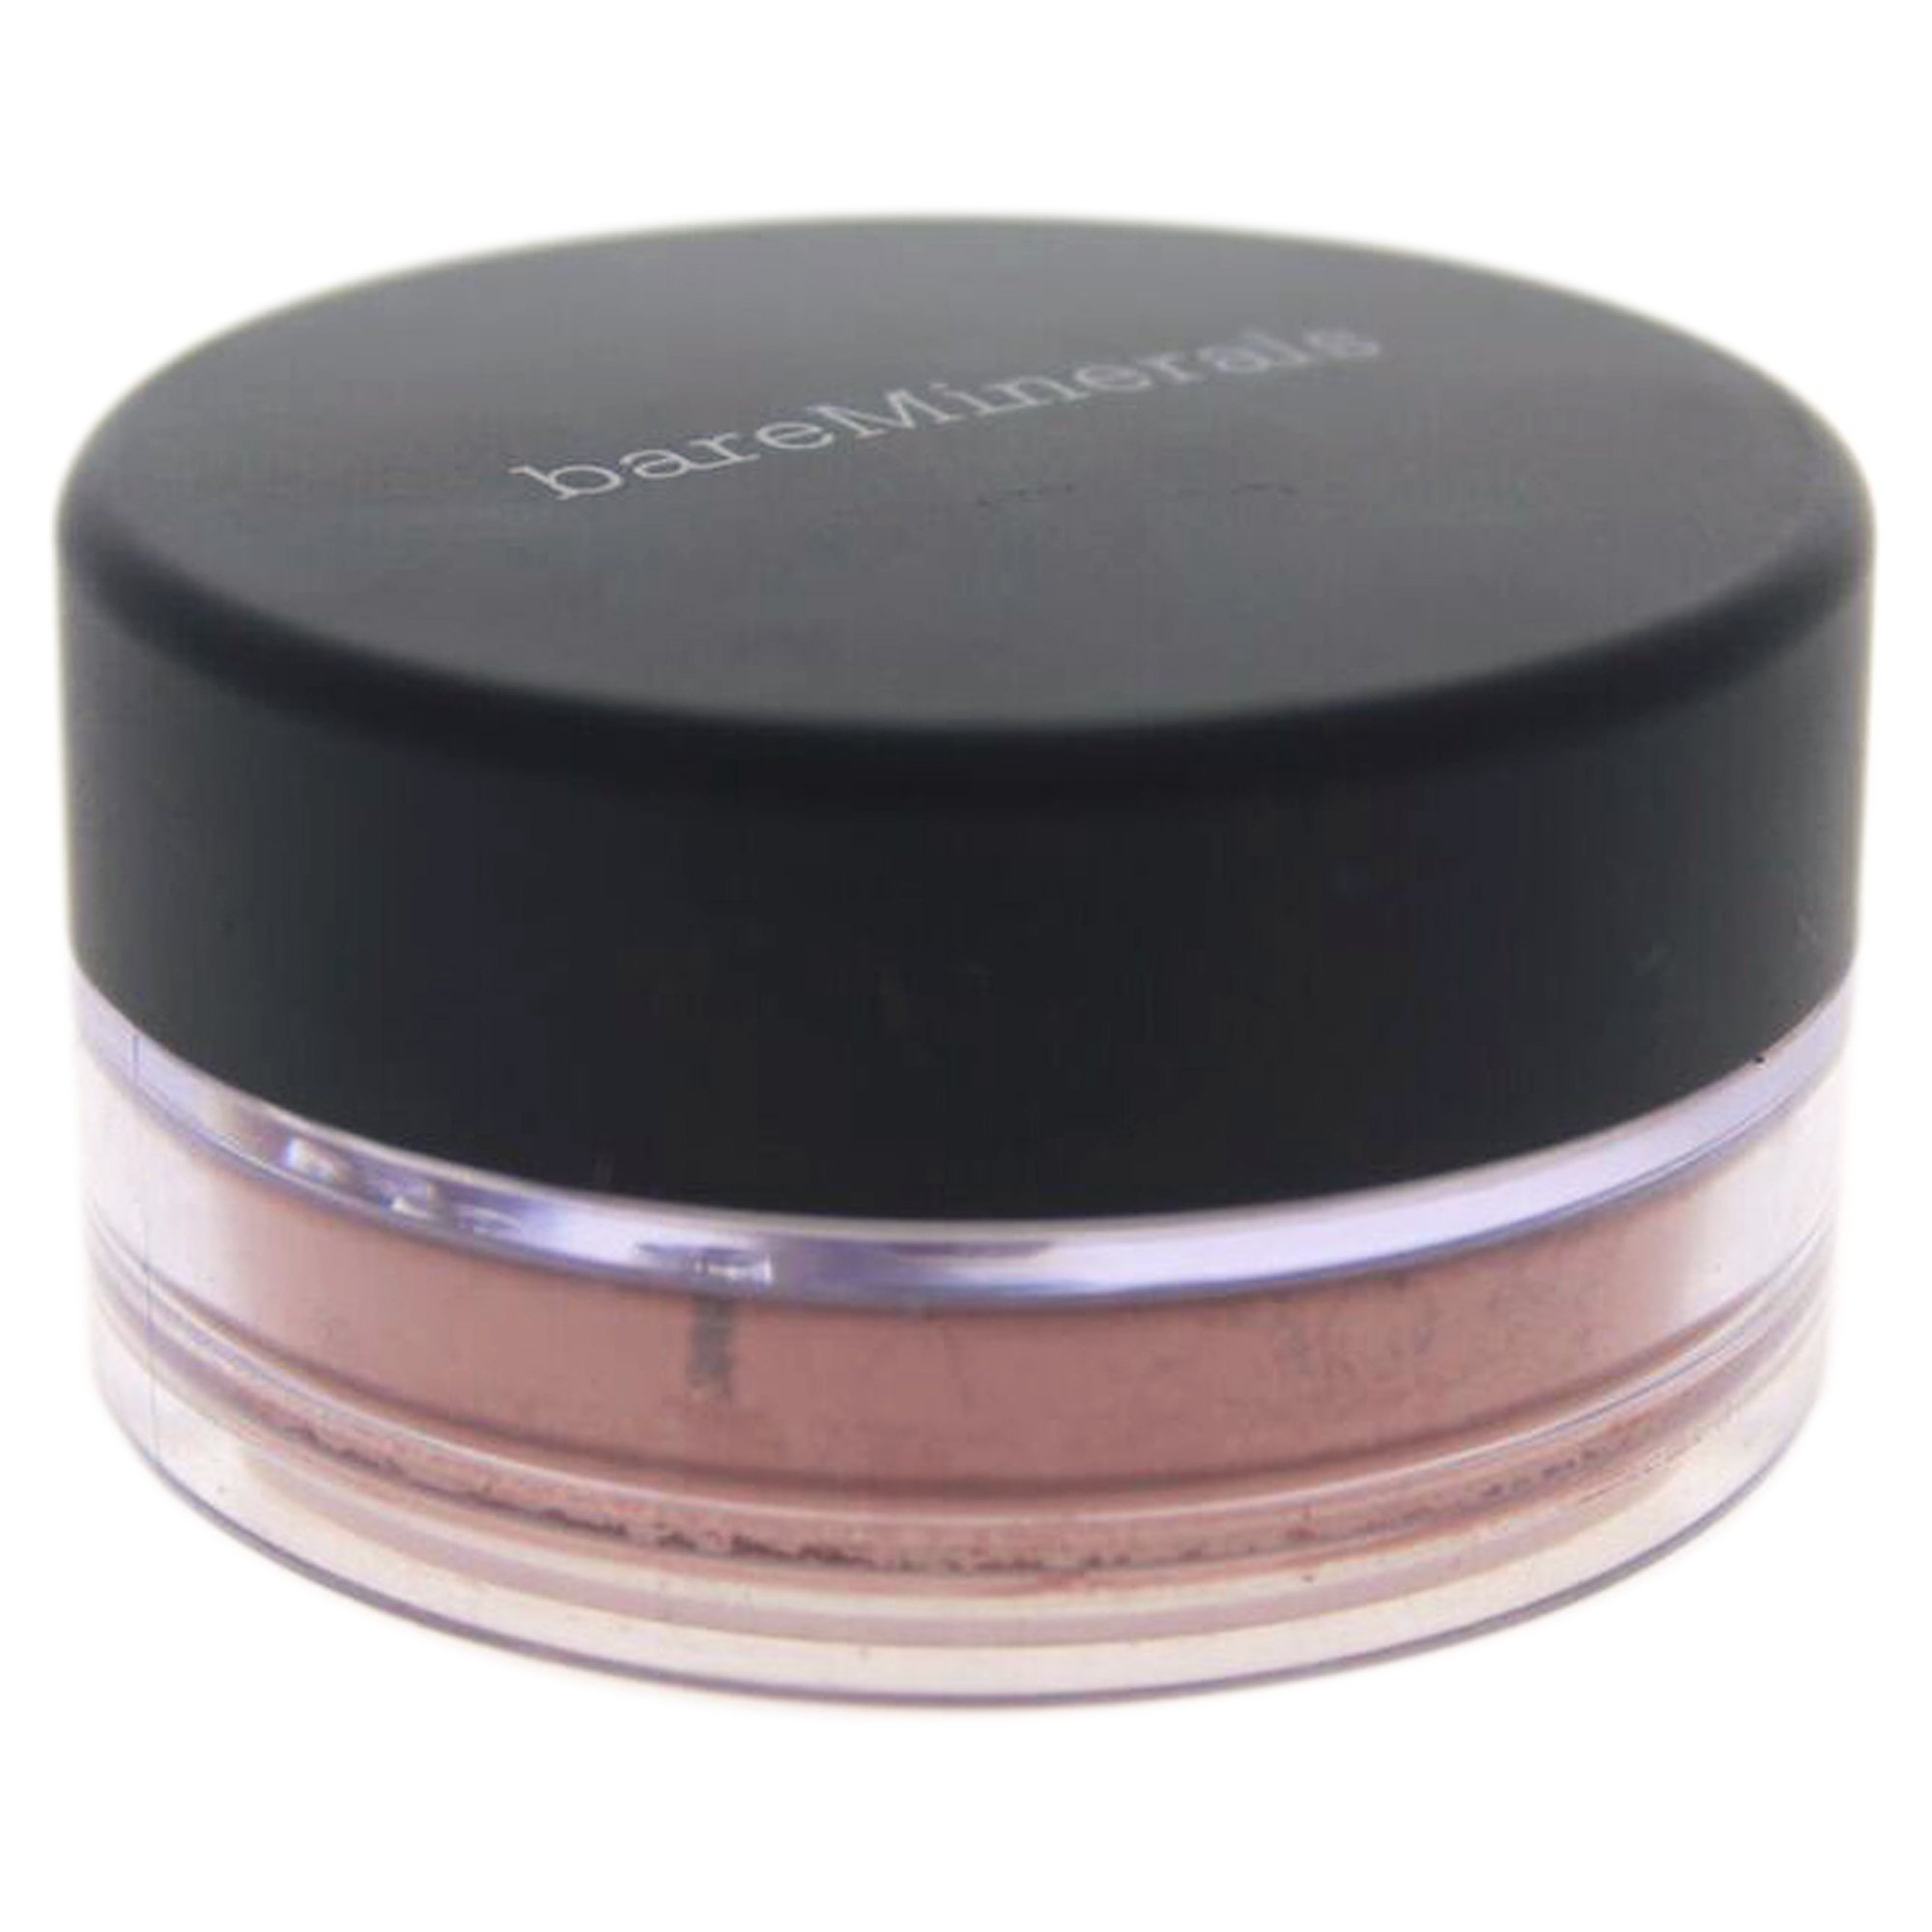 Bare Minerals Blush Highlighters, Golden Gate, 0.03 Ounce